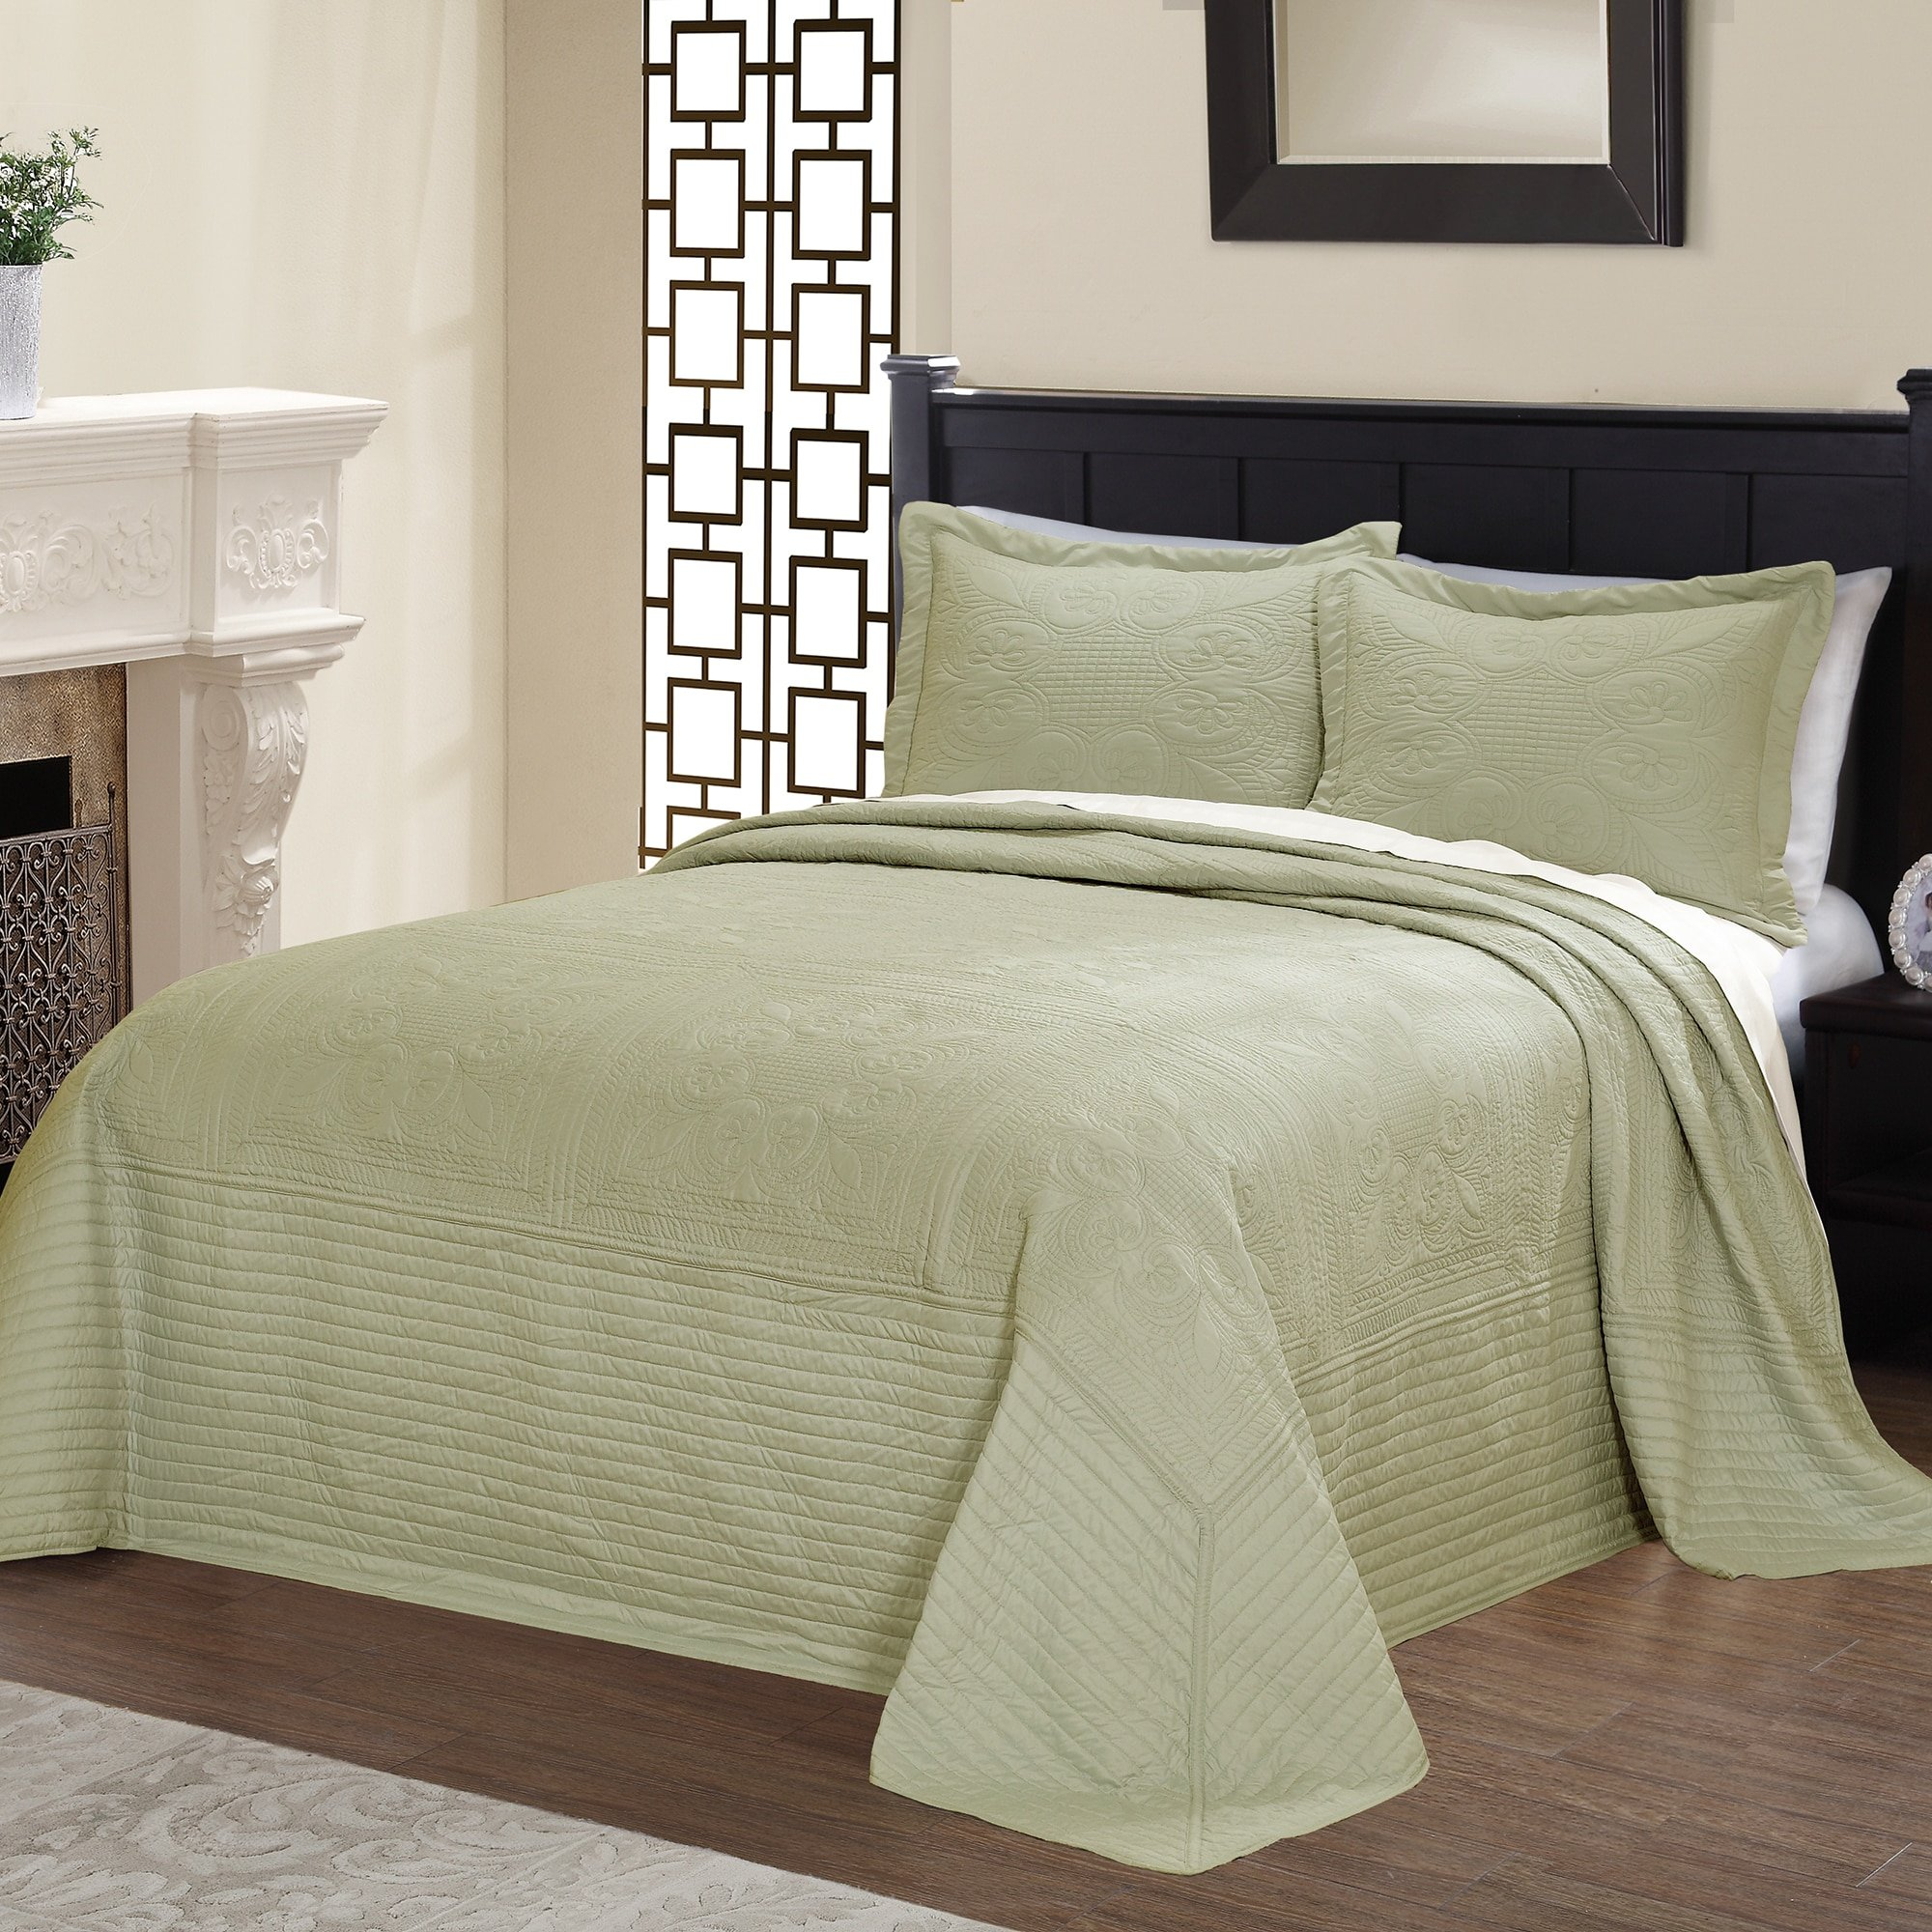 Pem-America, Inc. Vibrant Solid-colored Microfiber and Cotton Quilted French Tile Bedspread White Twin by Pem-America, Inc.